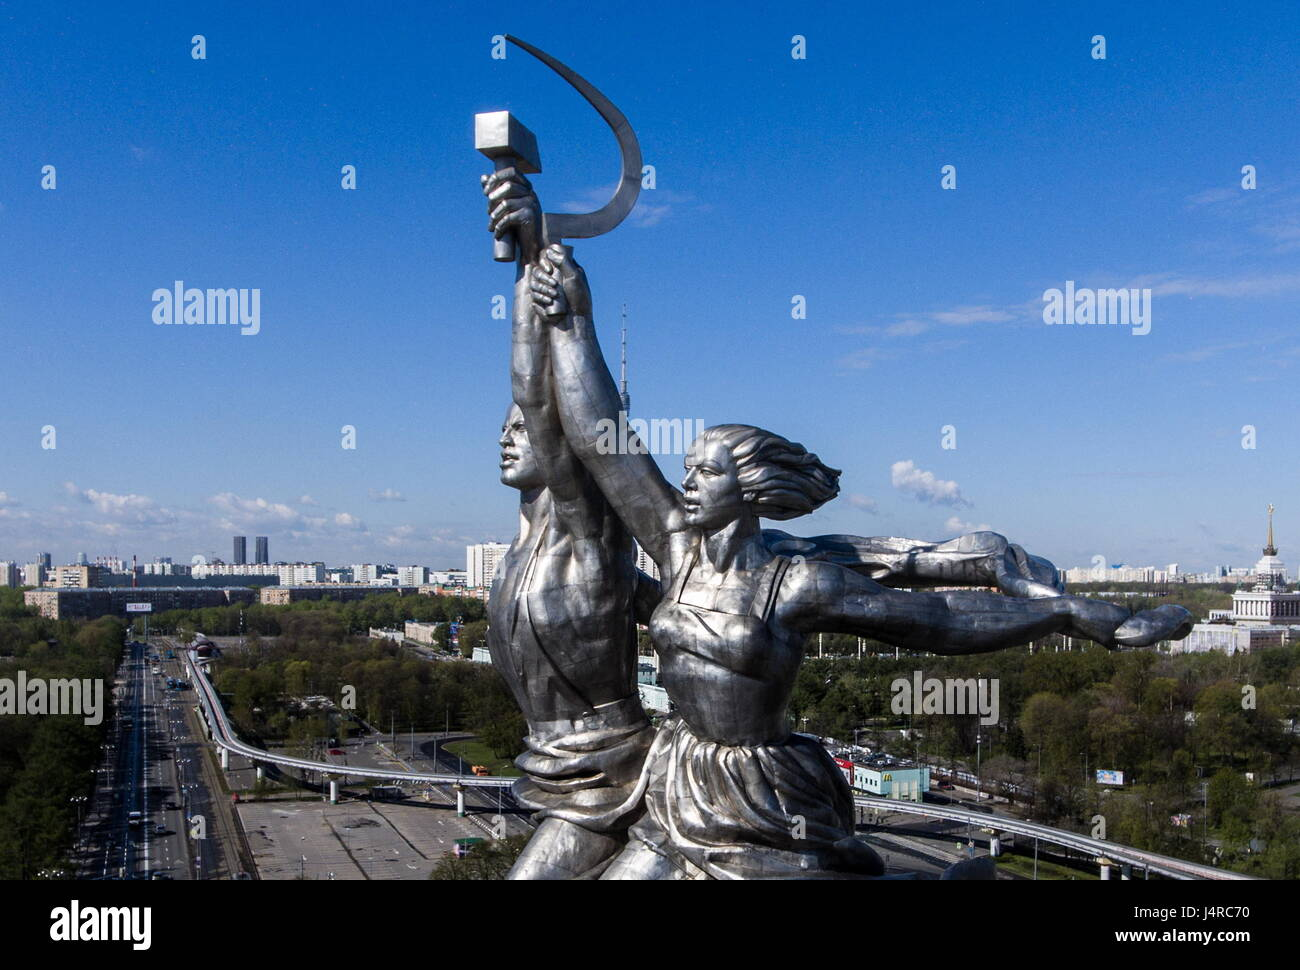 MOSCOW, RUSSIA - MAY 13, 2017: The statue of a worker and collective farm woman by Vera Mukhina at the main entrance - Stock Image